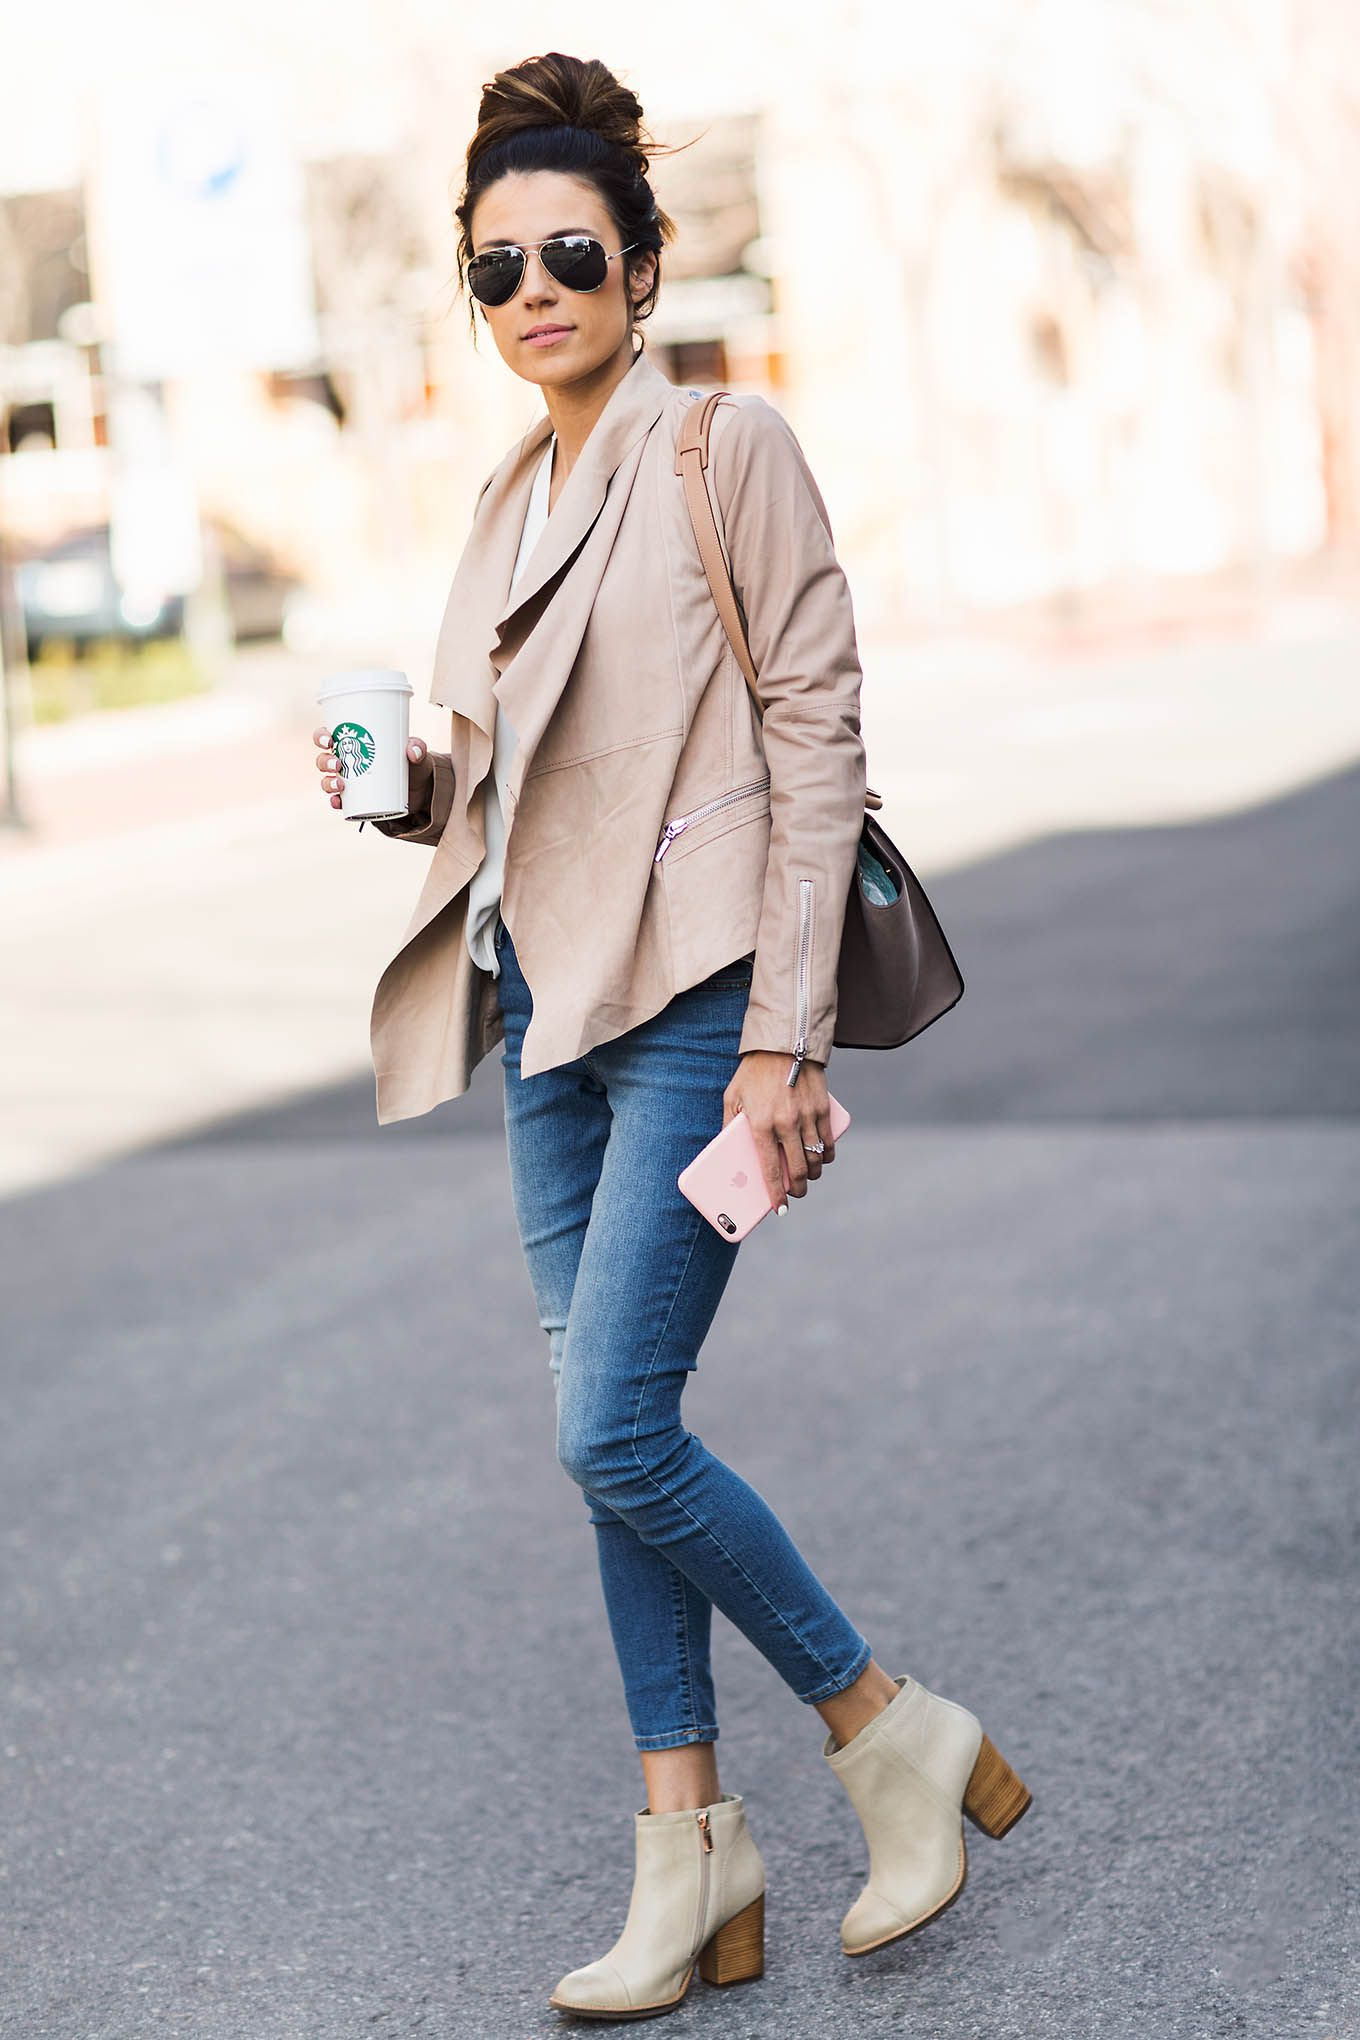 7 Spring Outfits To Give You That Edge You Crave - Just The